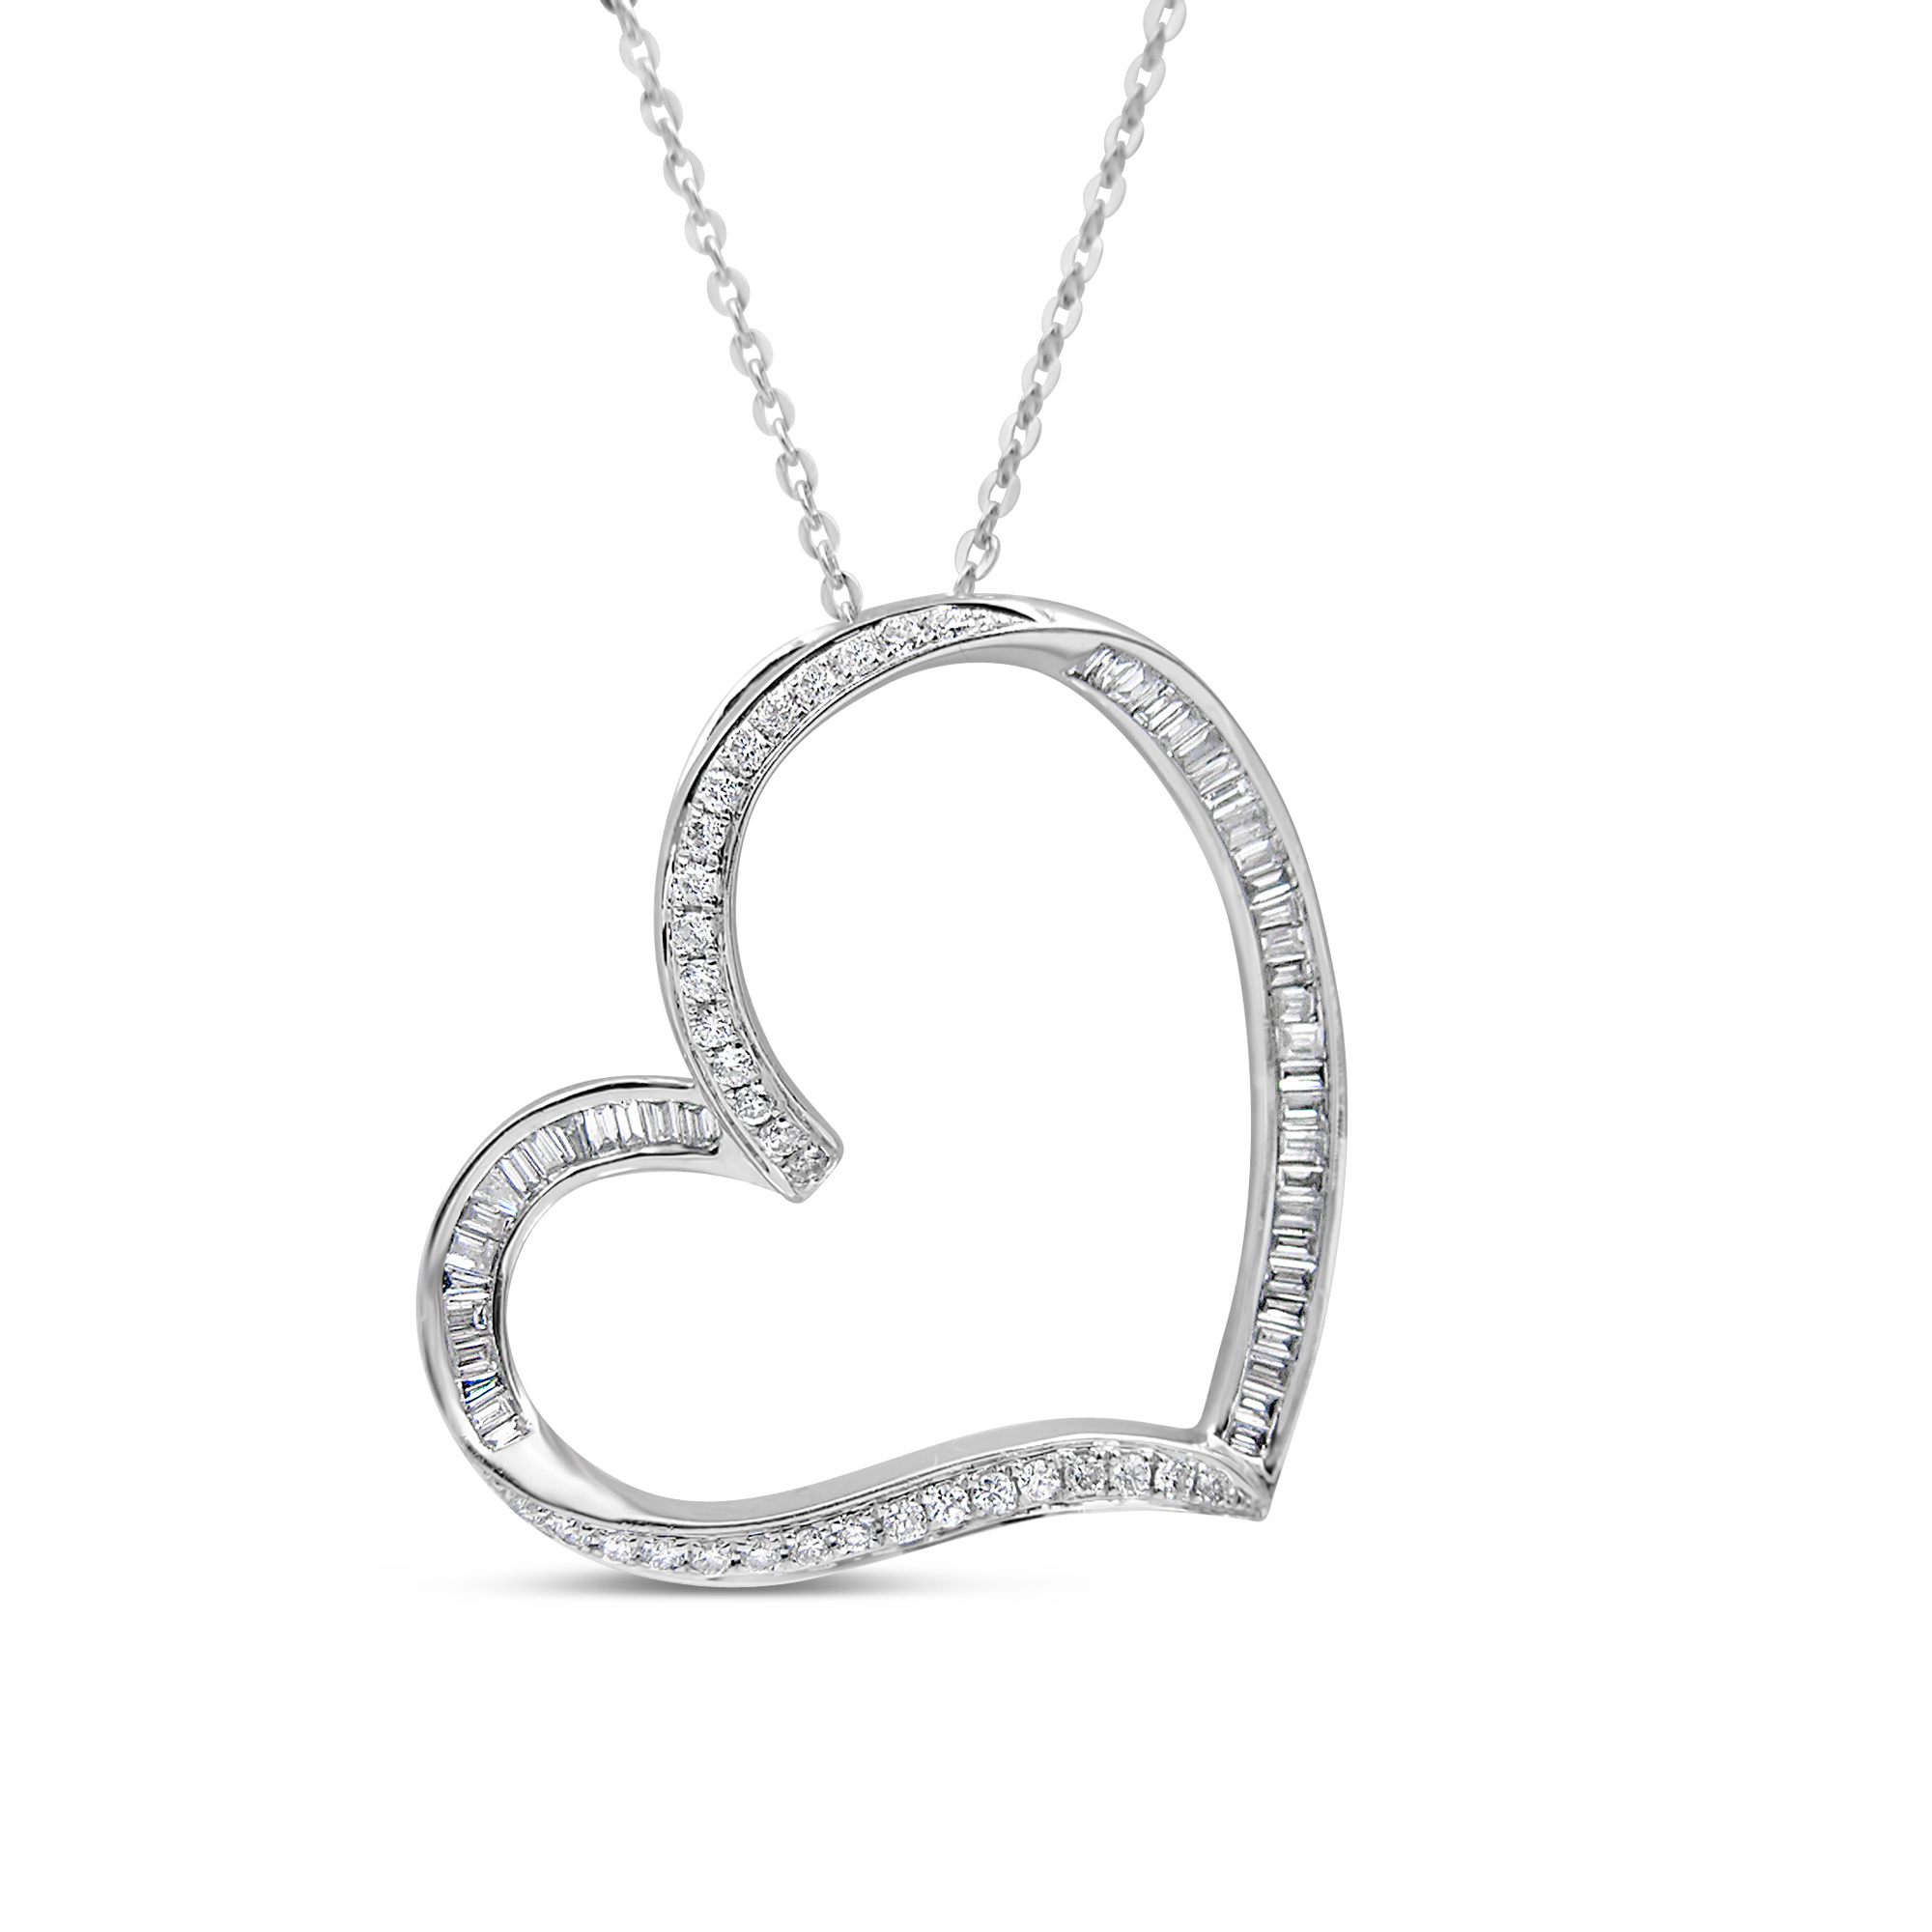 18kt white gold heart pendant with 0.43 ct diamonds